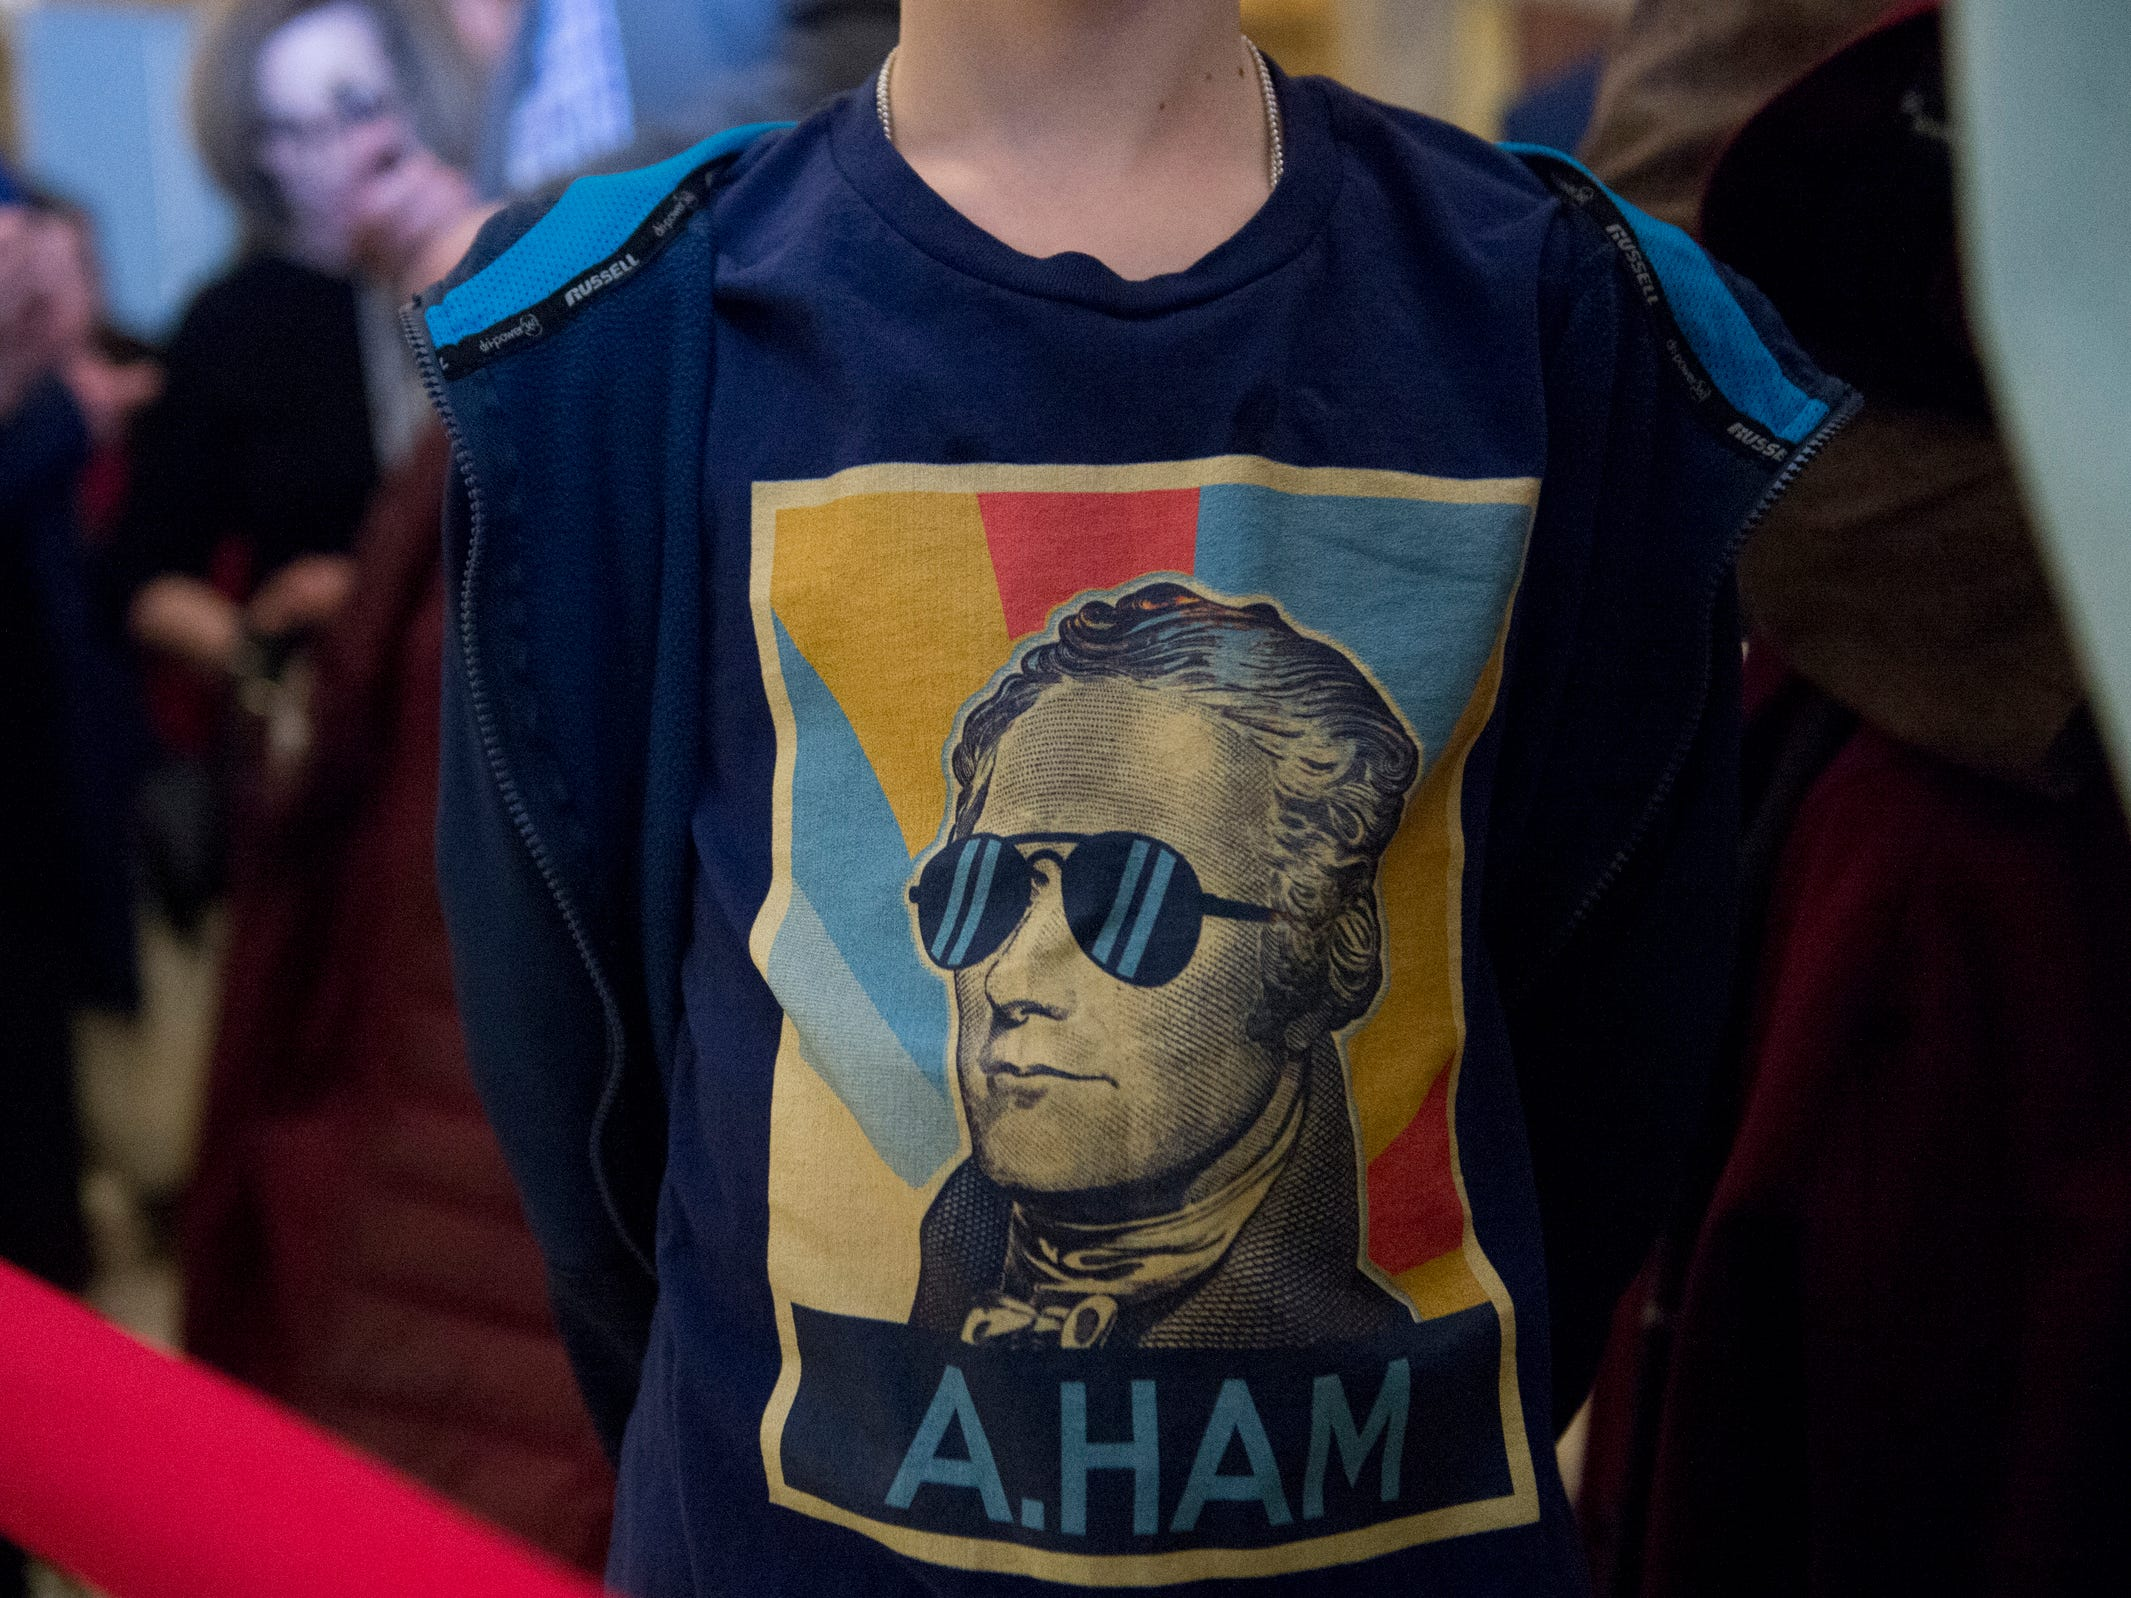 Ben Ruprecht, 12, of Rochester Hills wears a Hamilton t-shirt while waiting to enter the Fisher Theatre for the play's opening on Tuesday, March 12, 2019 in Detroit. The opening night of Broadway's Hamilton played to a full house in Detroit on Tuesday.